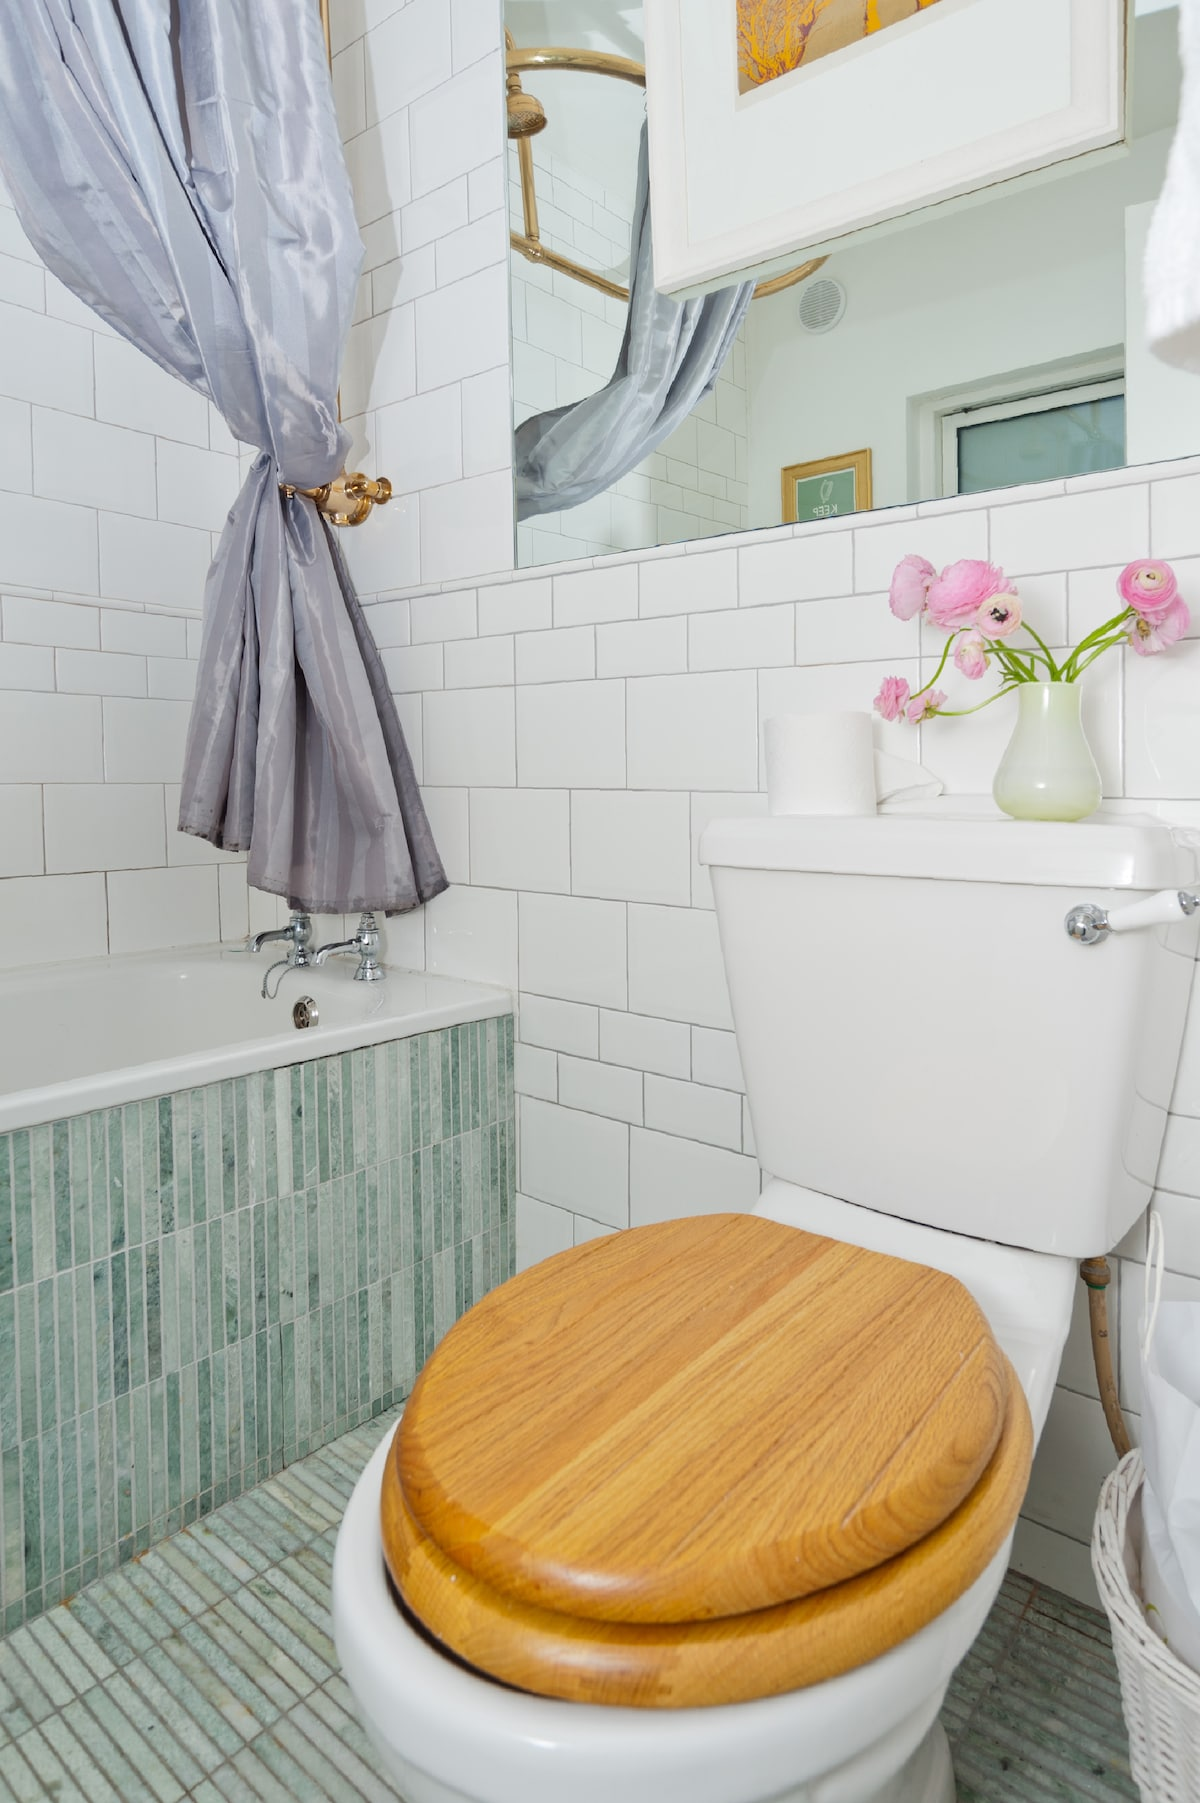 Your bathroom, exclusively yours for  your stay, I have an ensuite upstairs. Constant hot water, marble floor,brass fittings and a generous bath tub :)